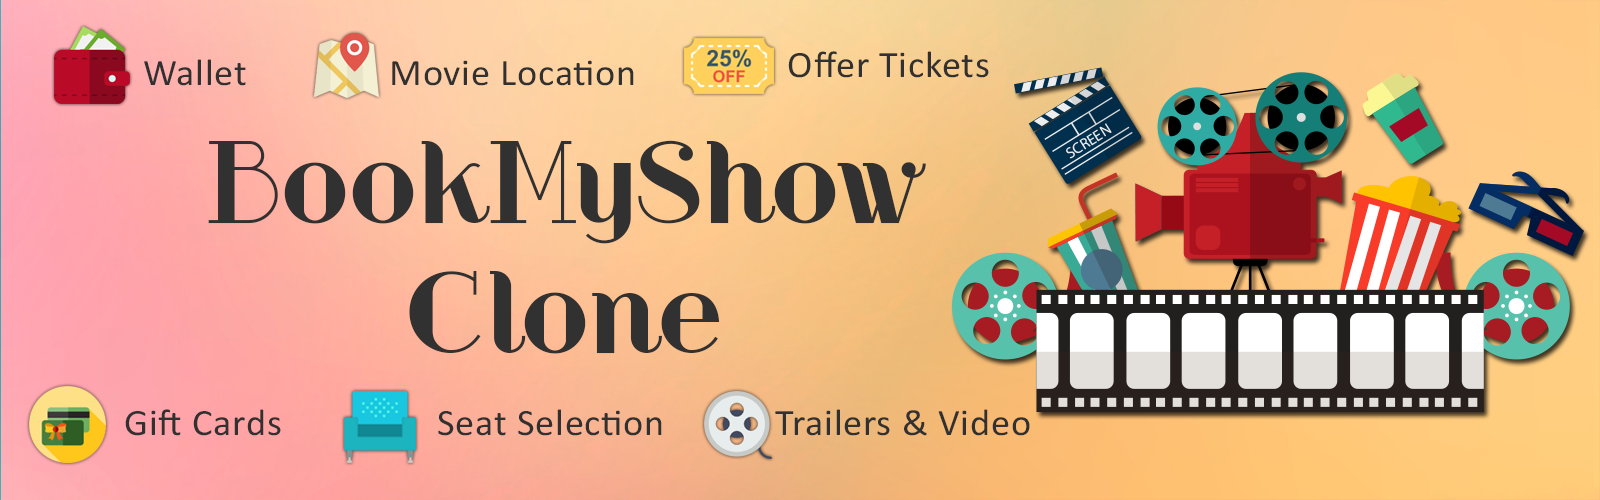 http://scriptstore.in/product/book-myshow-clone-script/ website snapshot